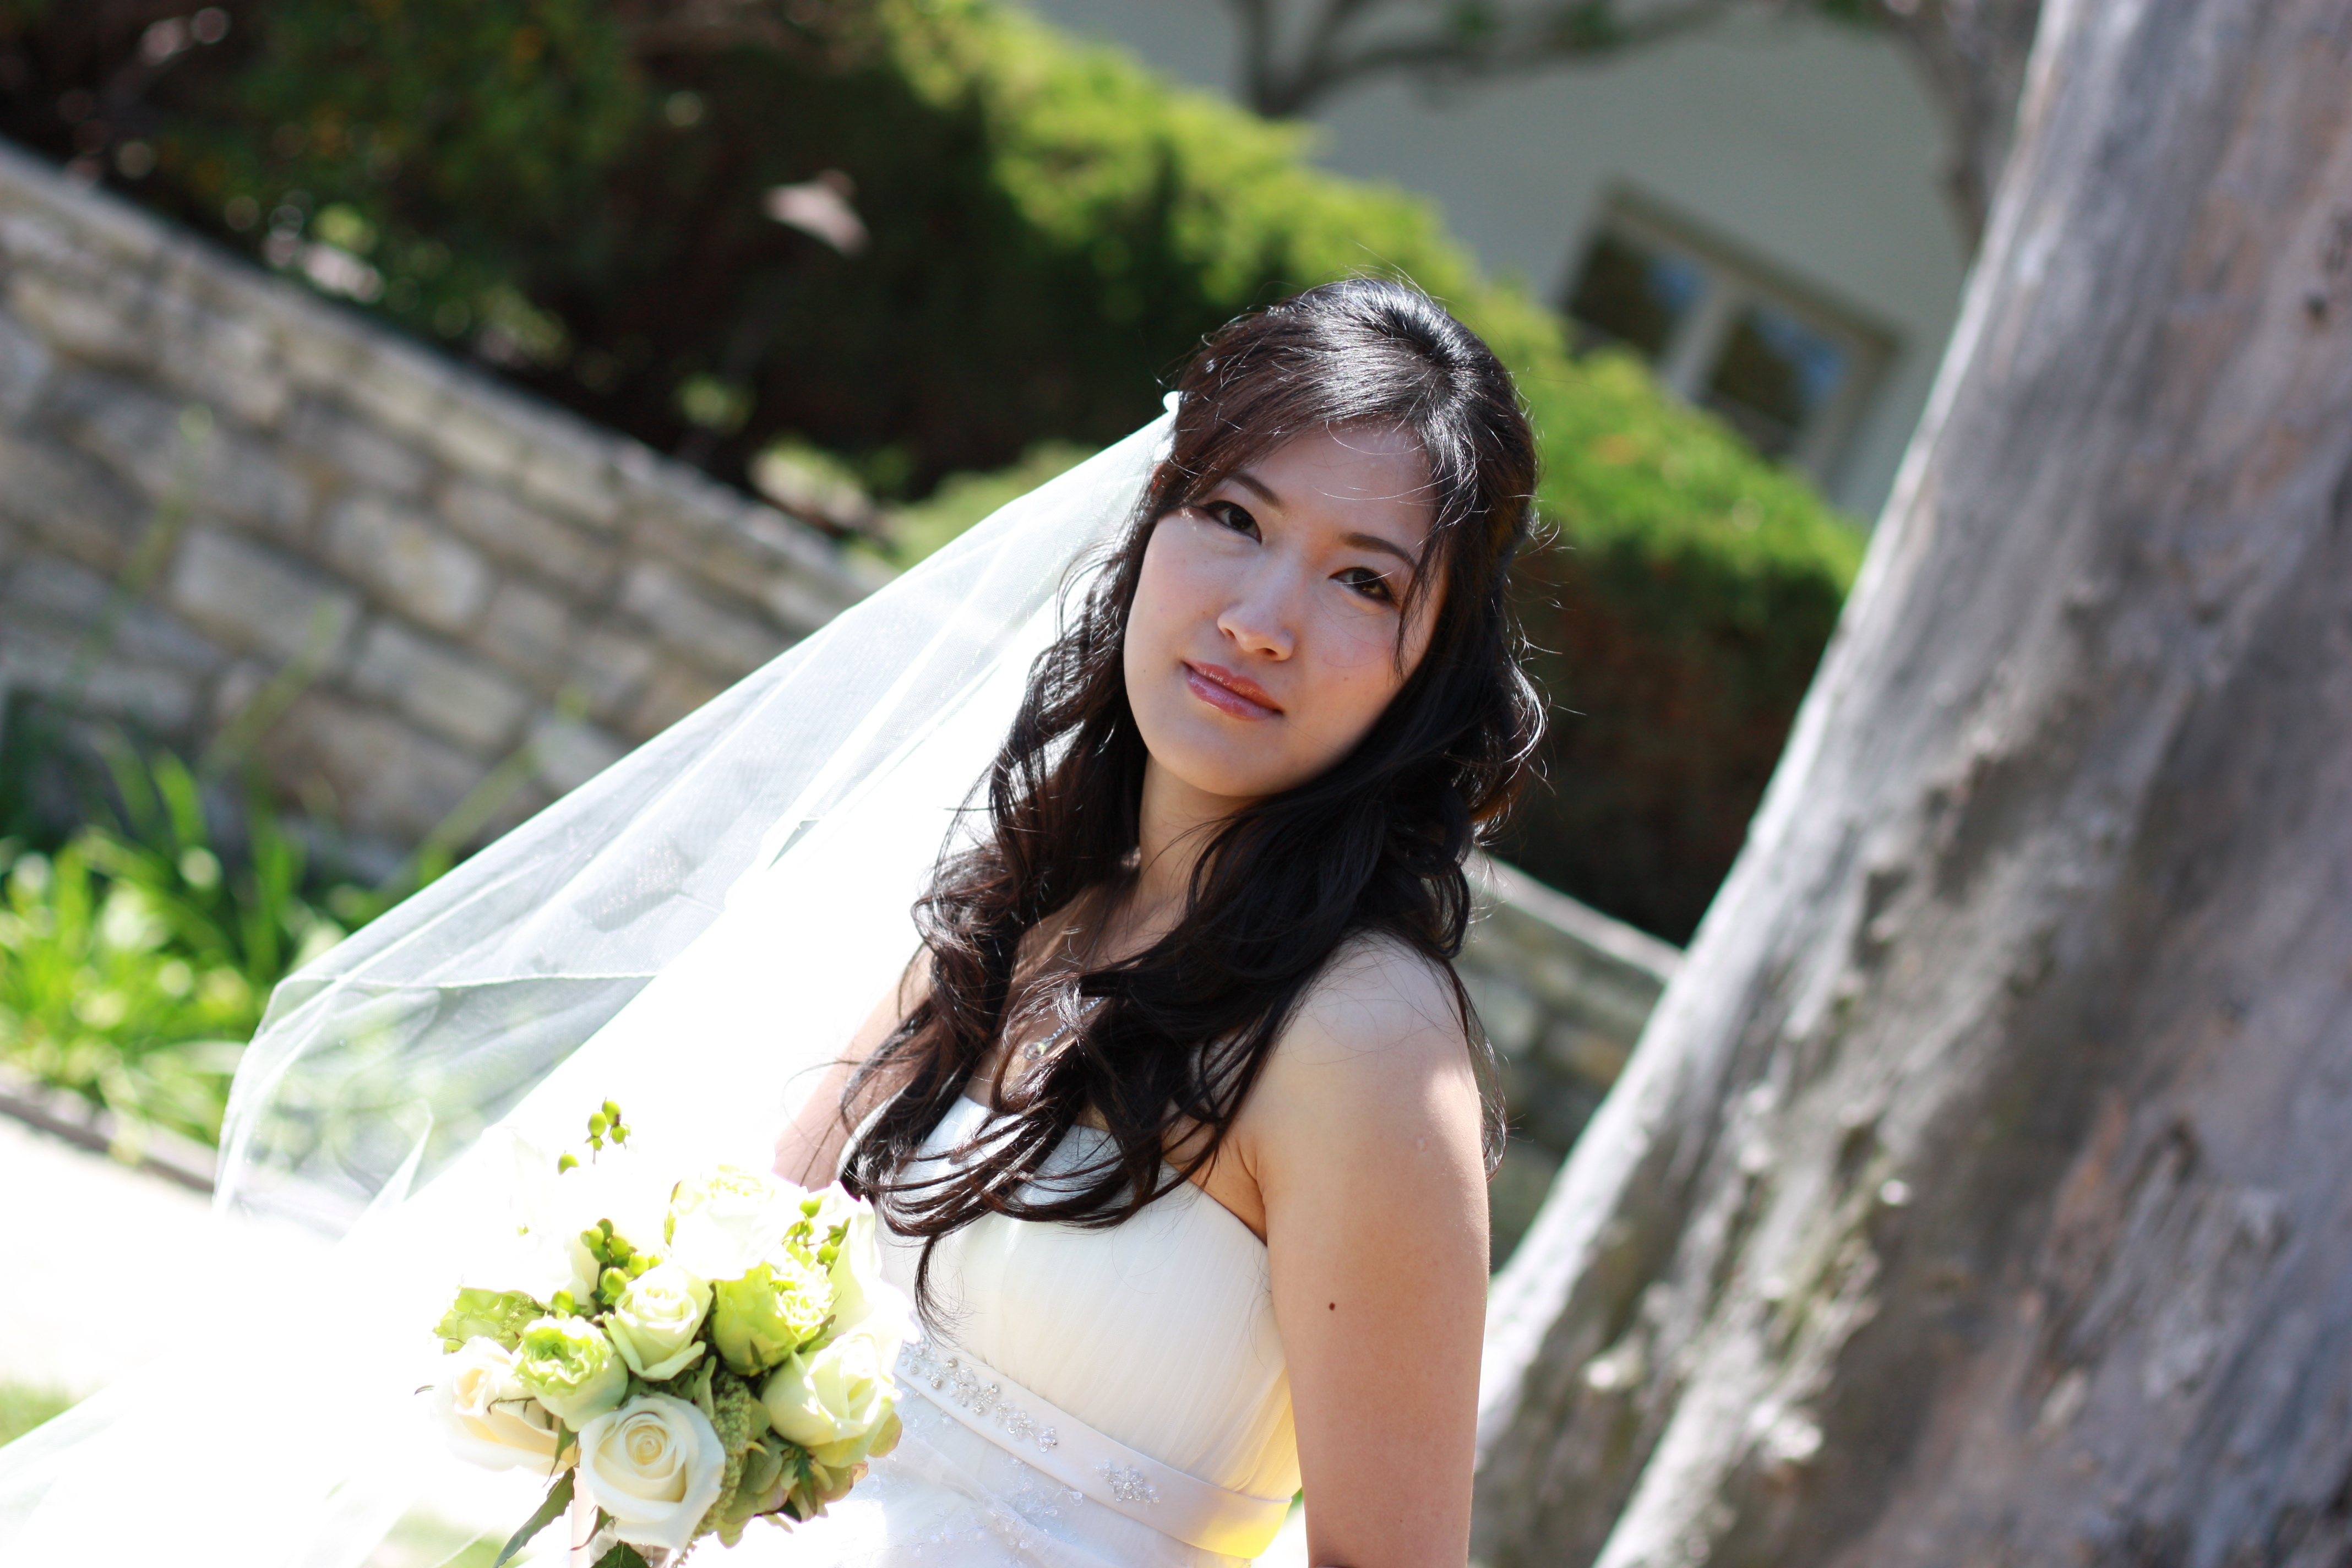 Beauty, Flowers & Decor, white, green, Down, Bride Bouquets, Flowers, Bouquet, Hair, Asian, Do